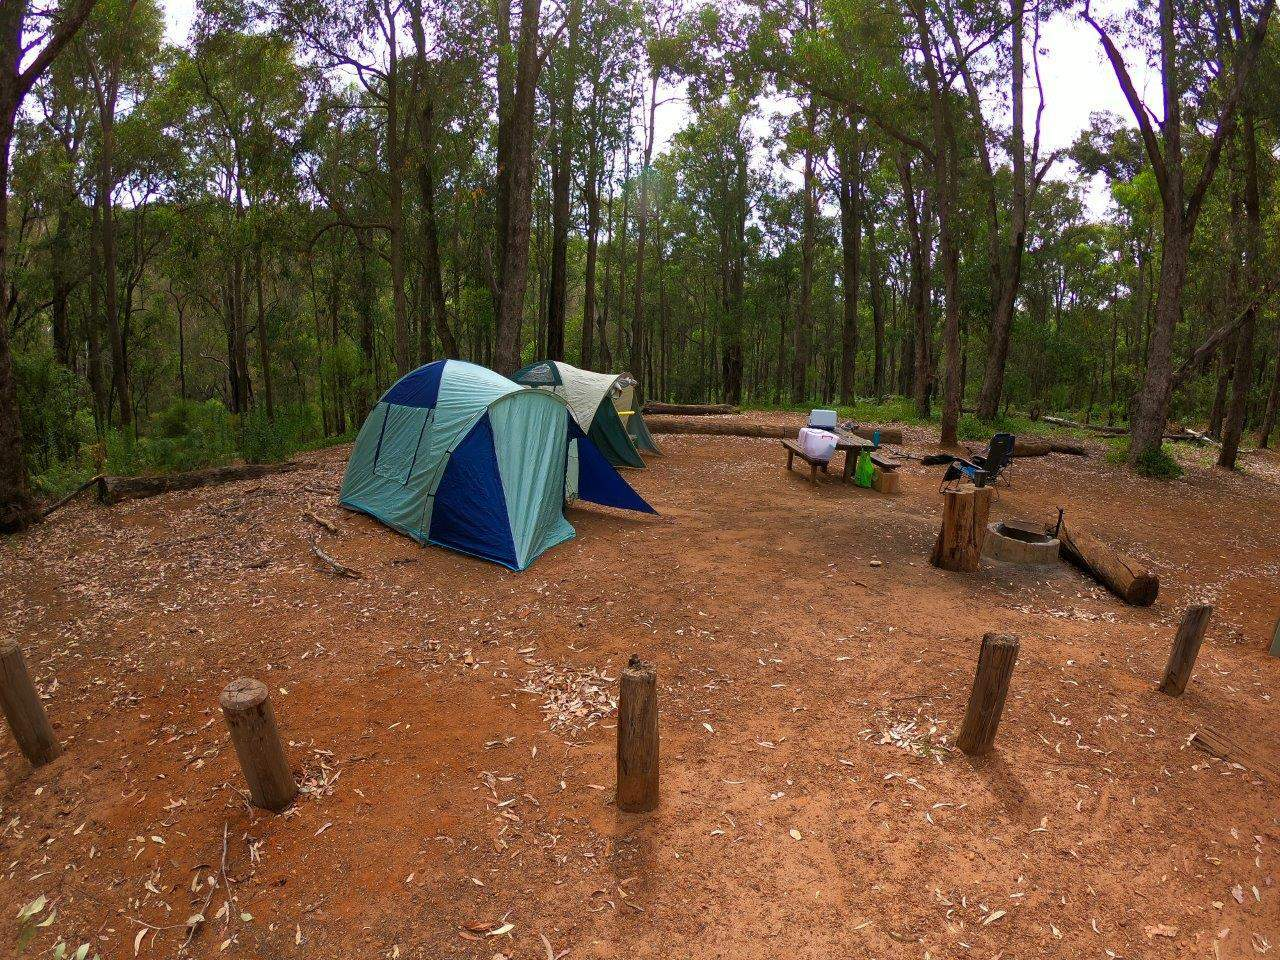 Stringers camping